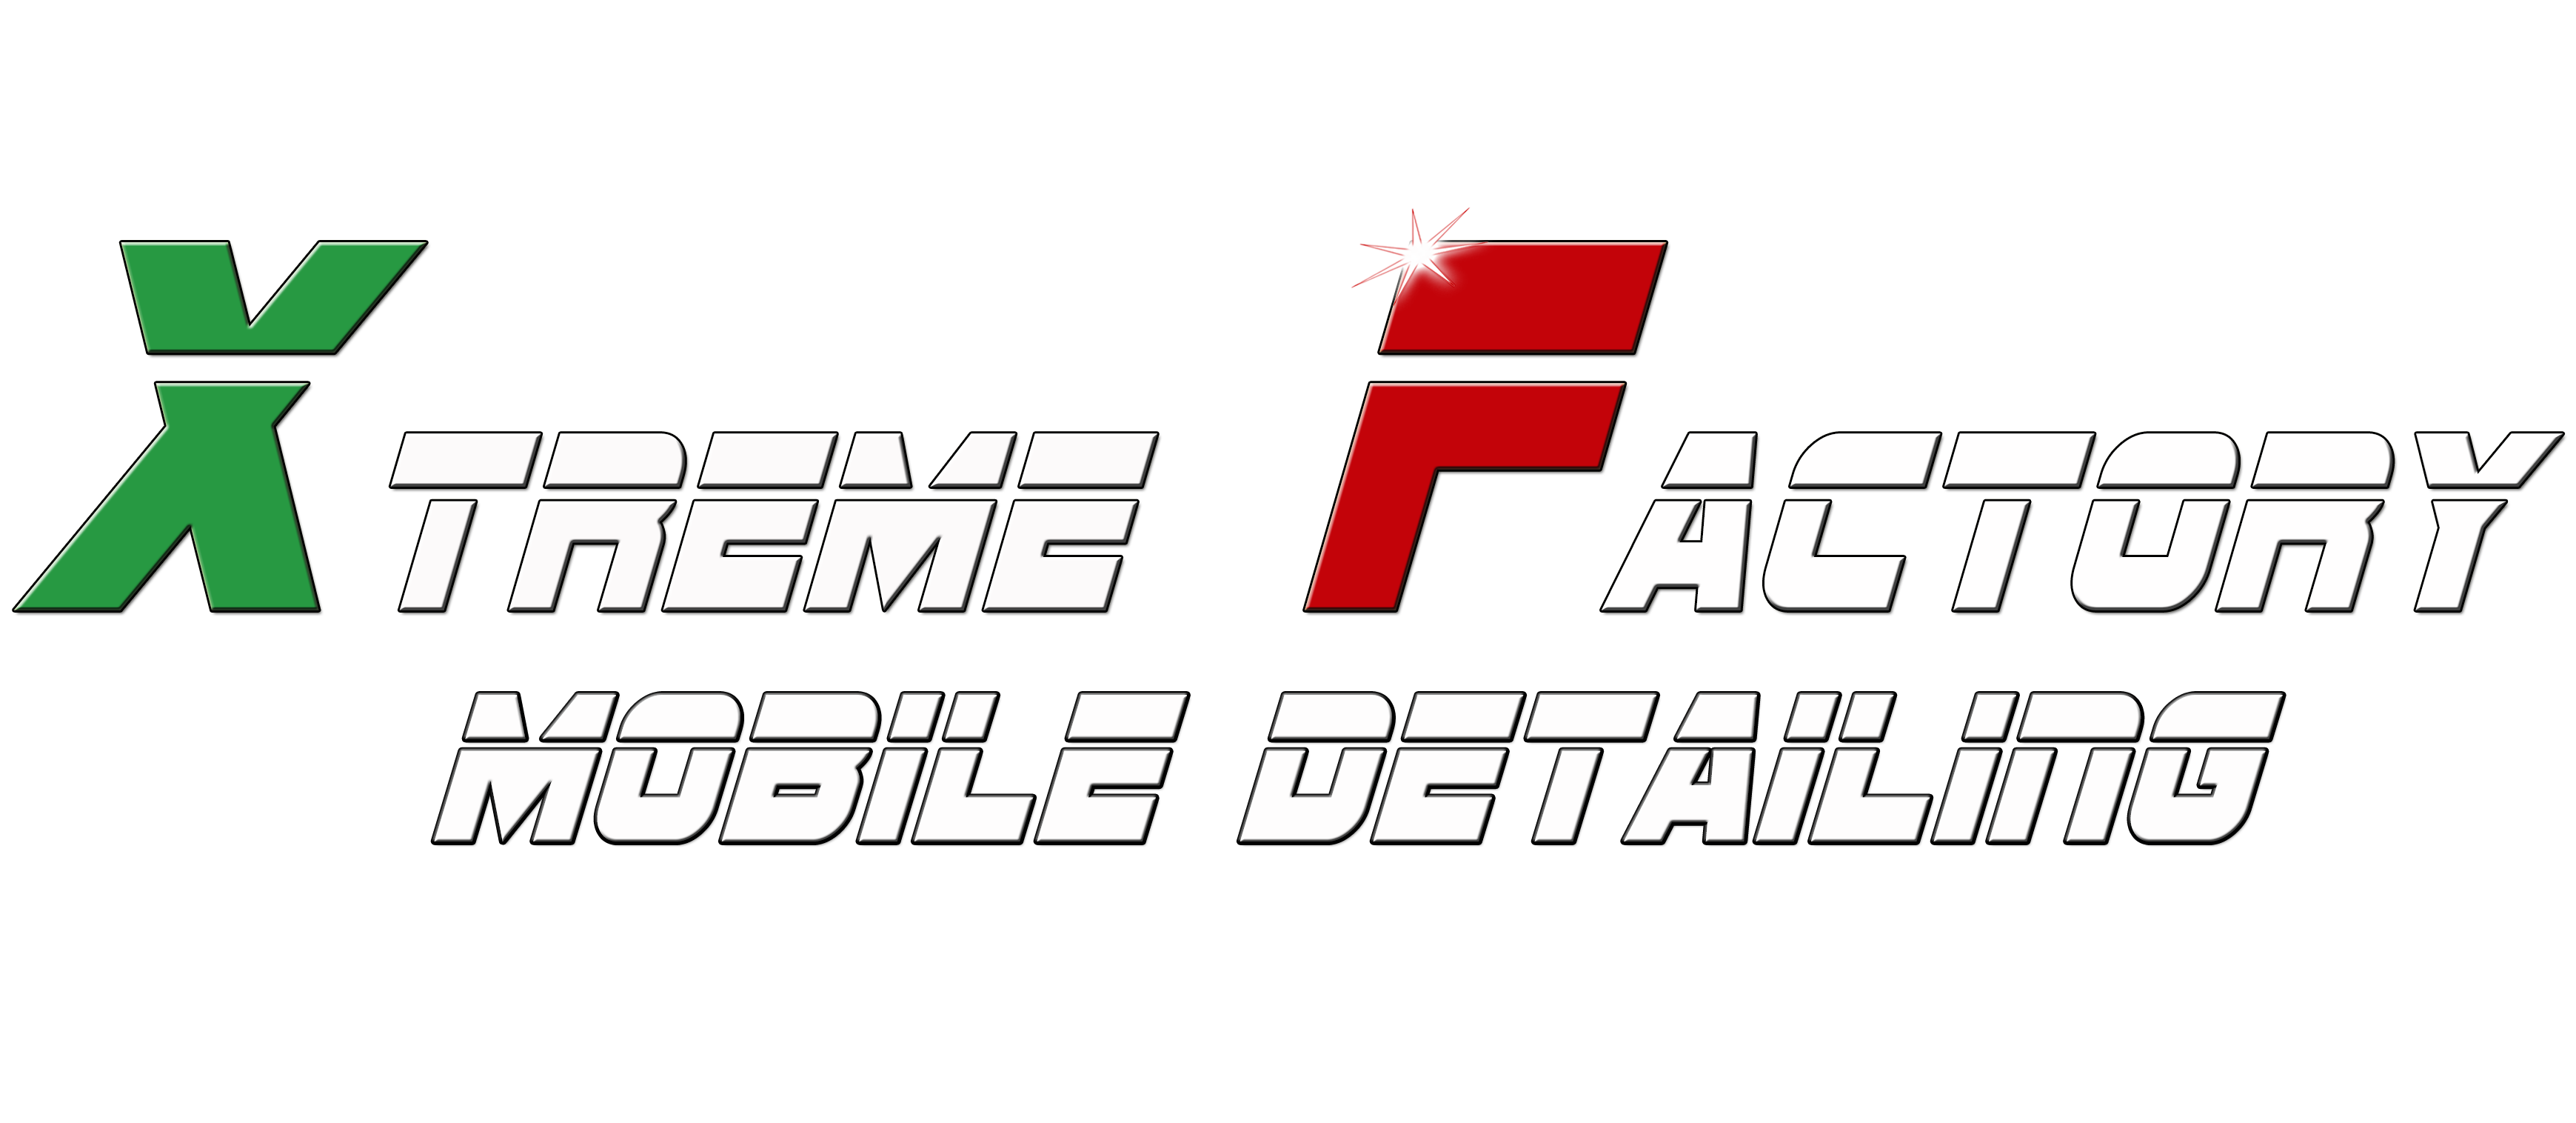 Xtreme-Factory Mobile Detailing